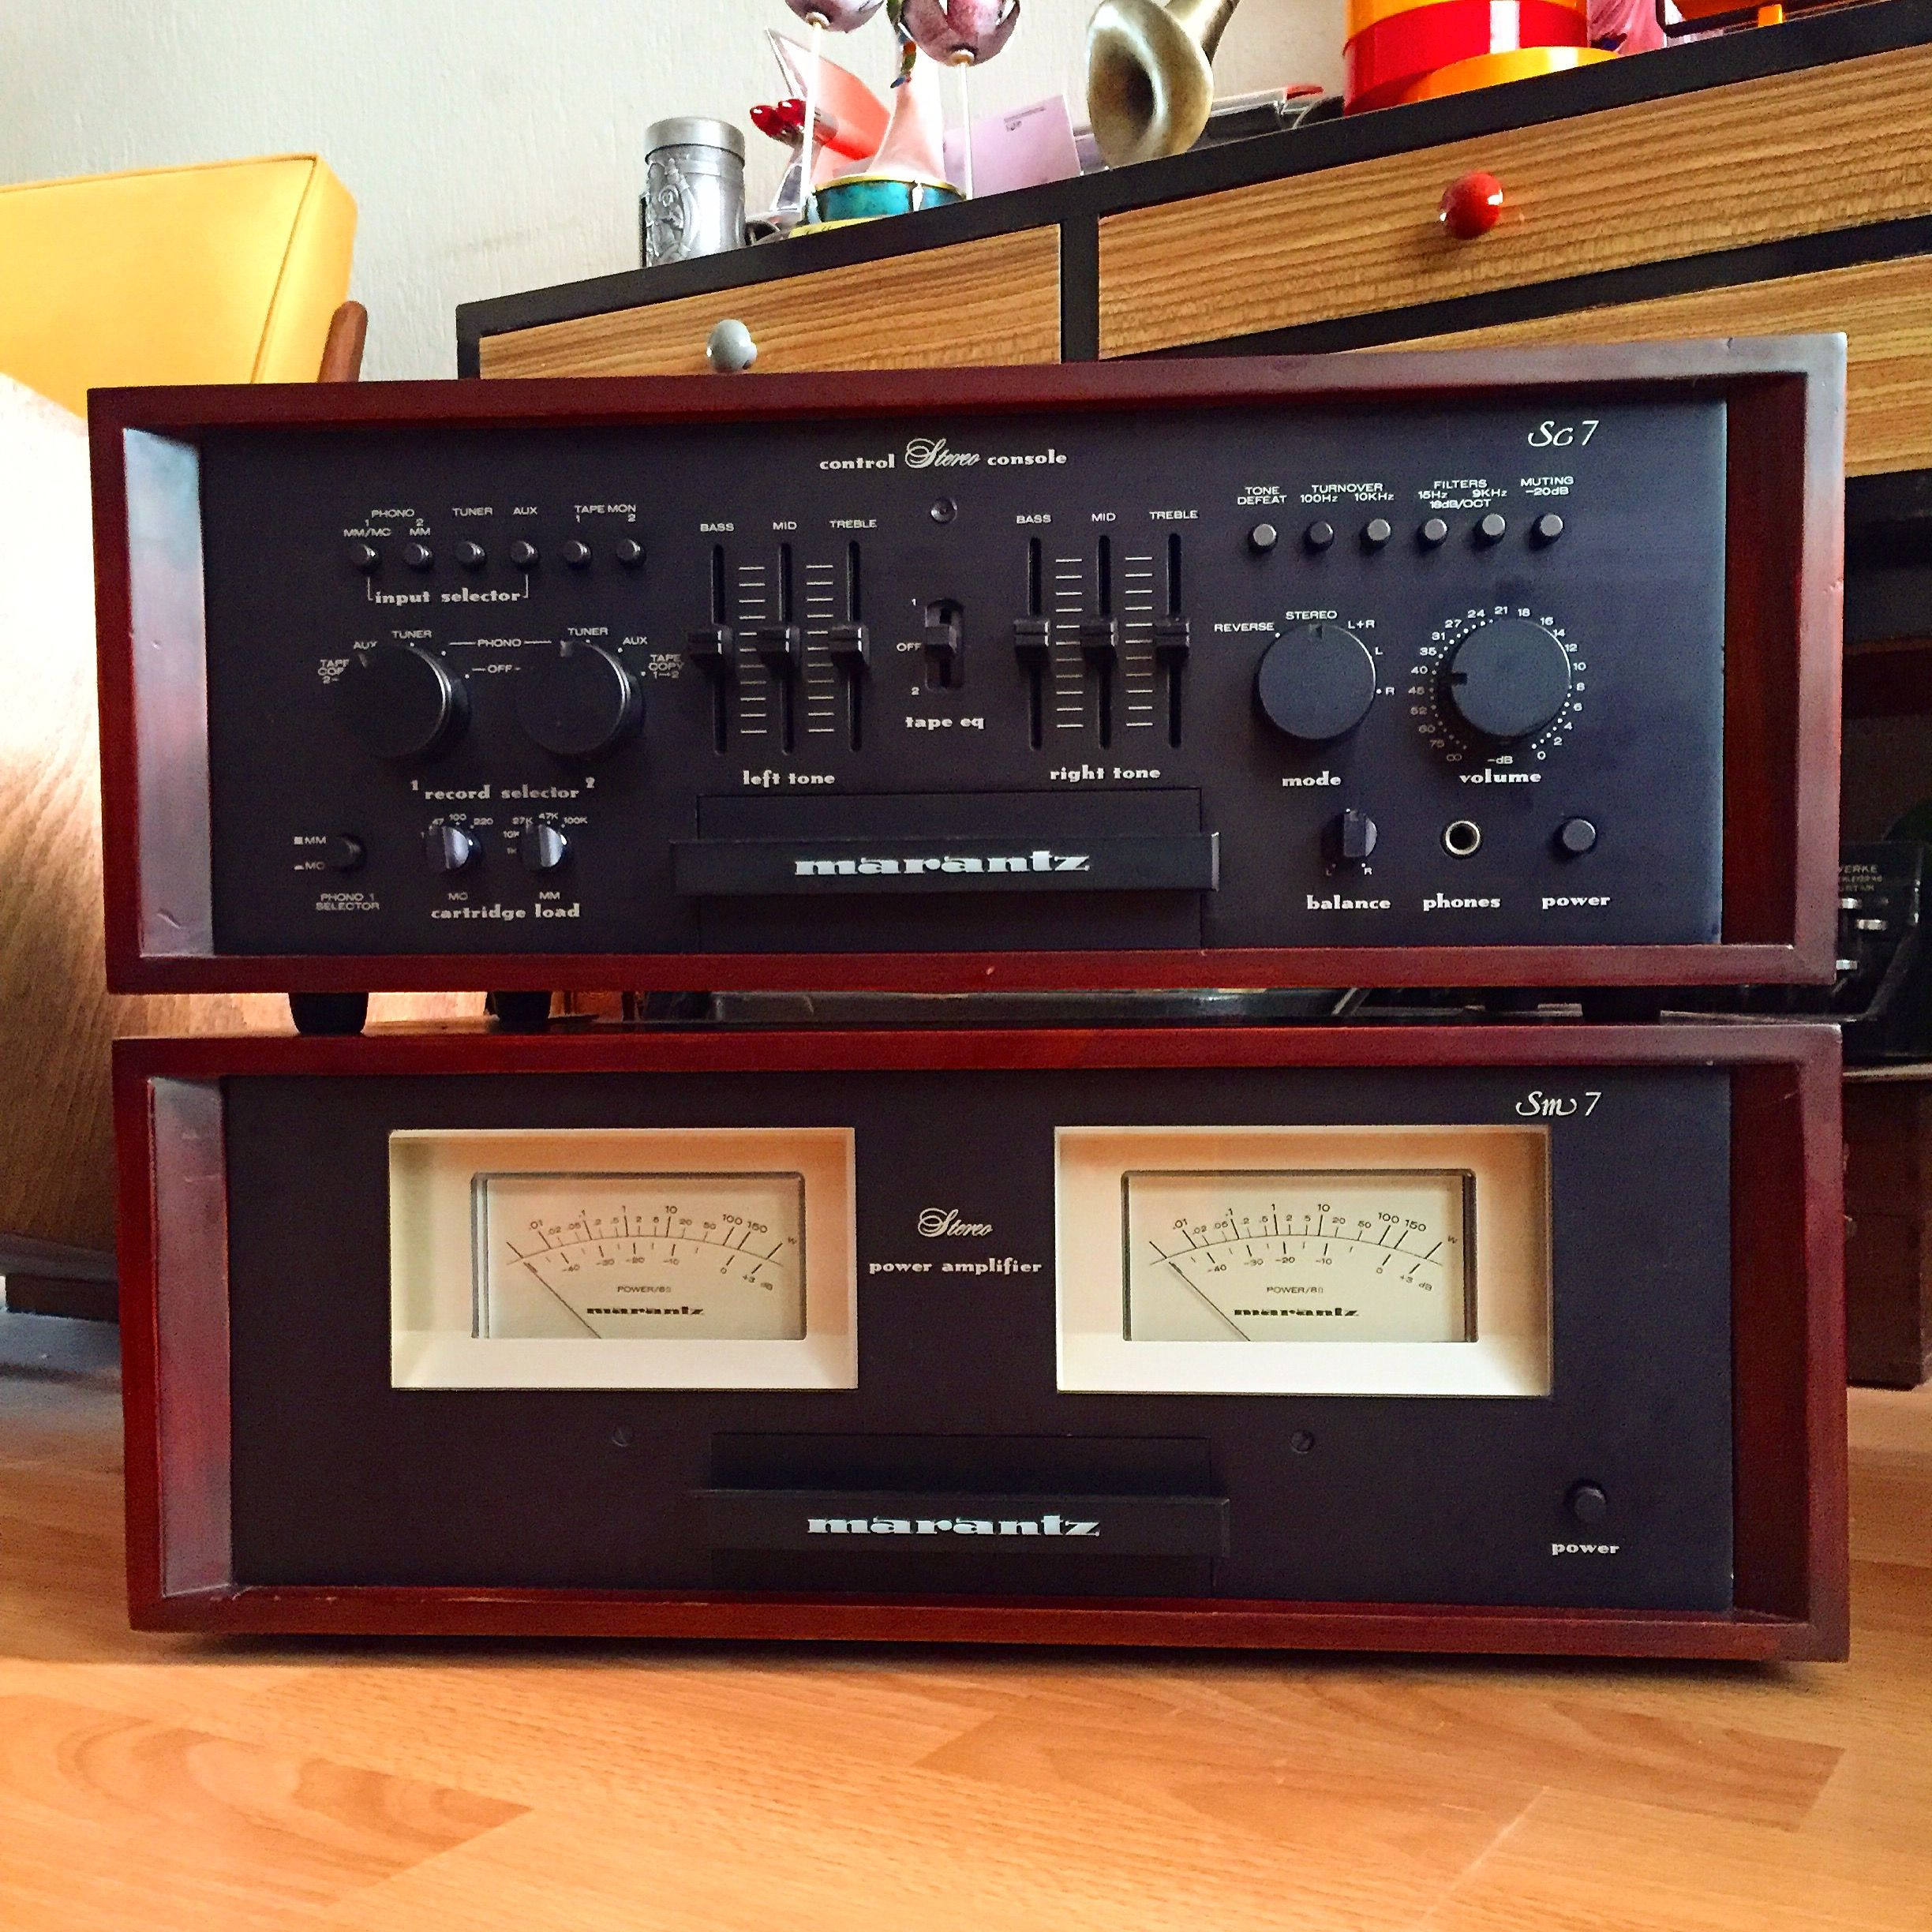 marantz sm 7 sc7 pre power stereovintage amplifiers tonbandger t verst rker musik. Black Bedroom Furniture Sets. Home Design Ideas